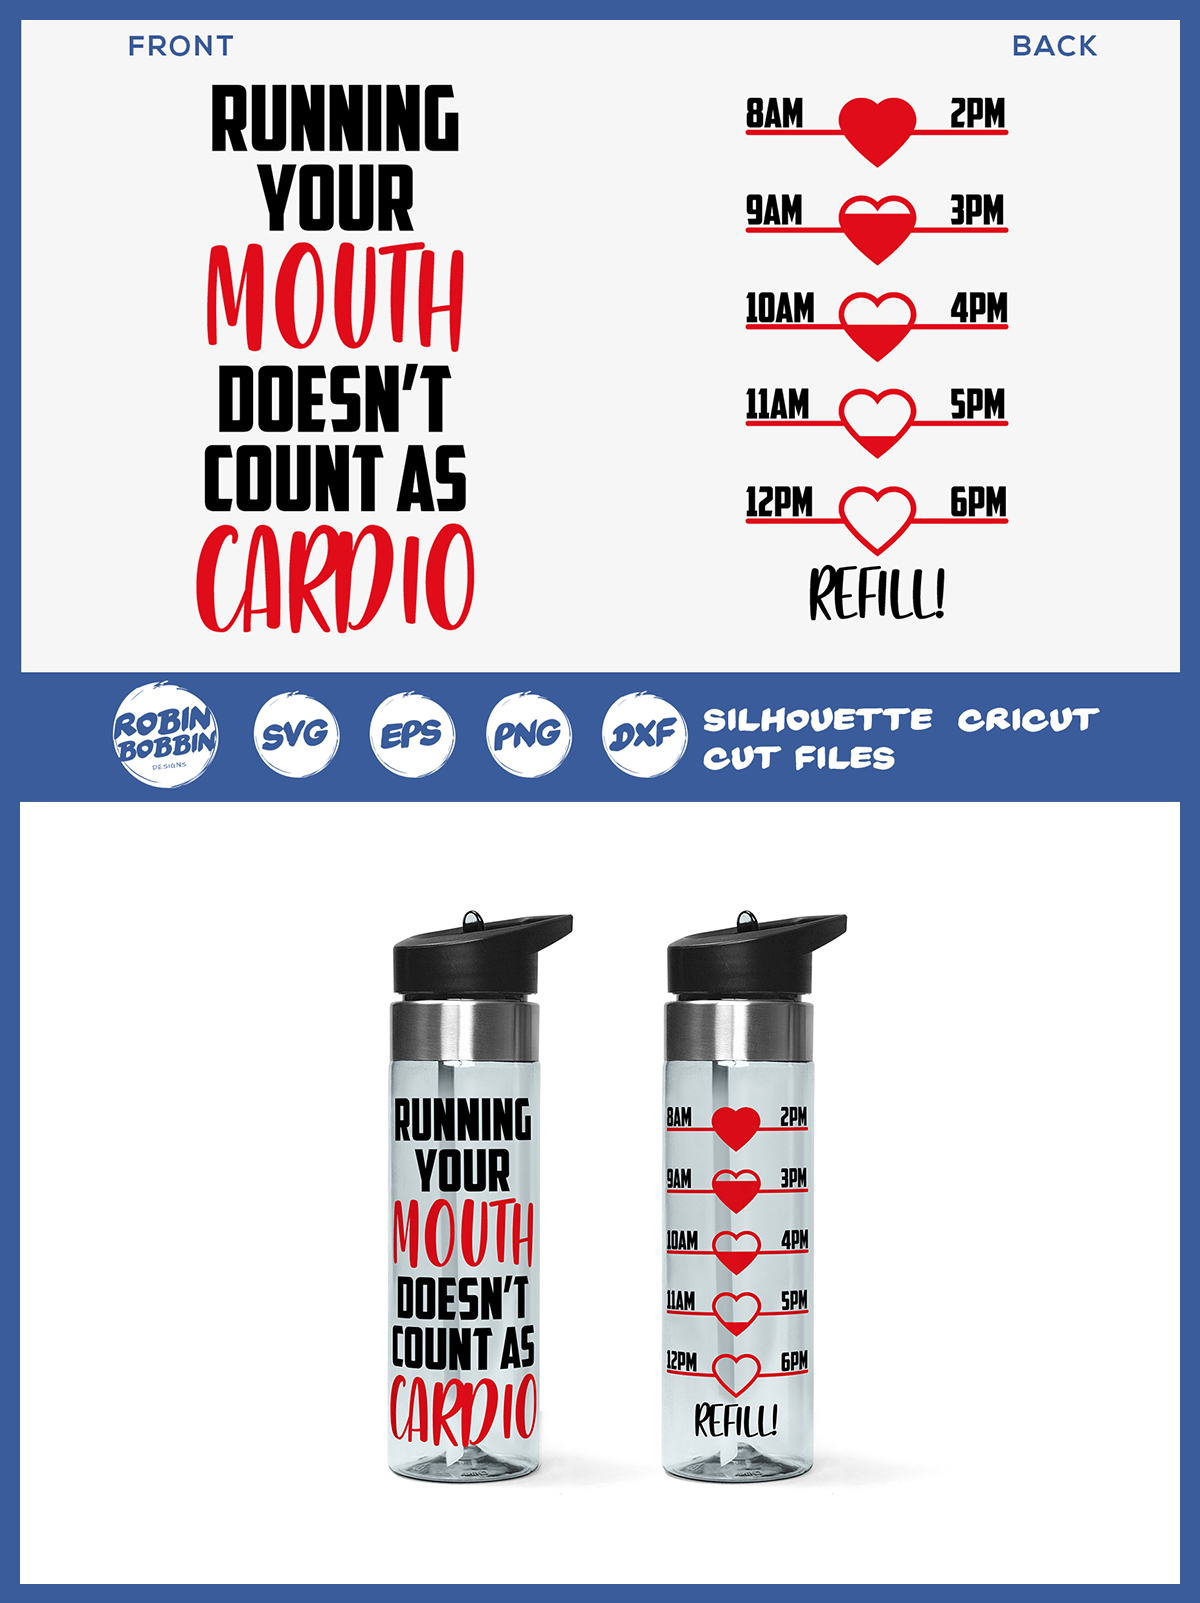 Running Your Mouth - Water Bottle Trackers SVG File example image 2